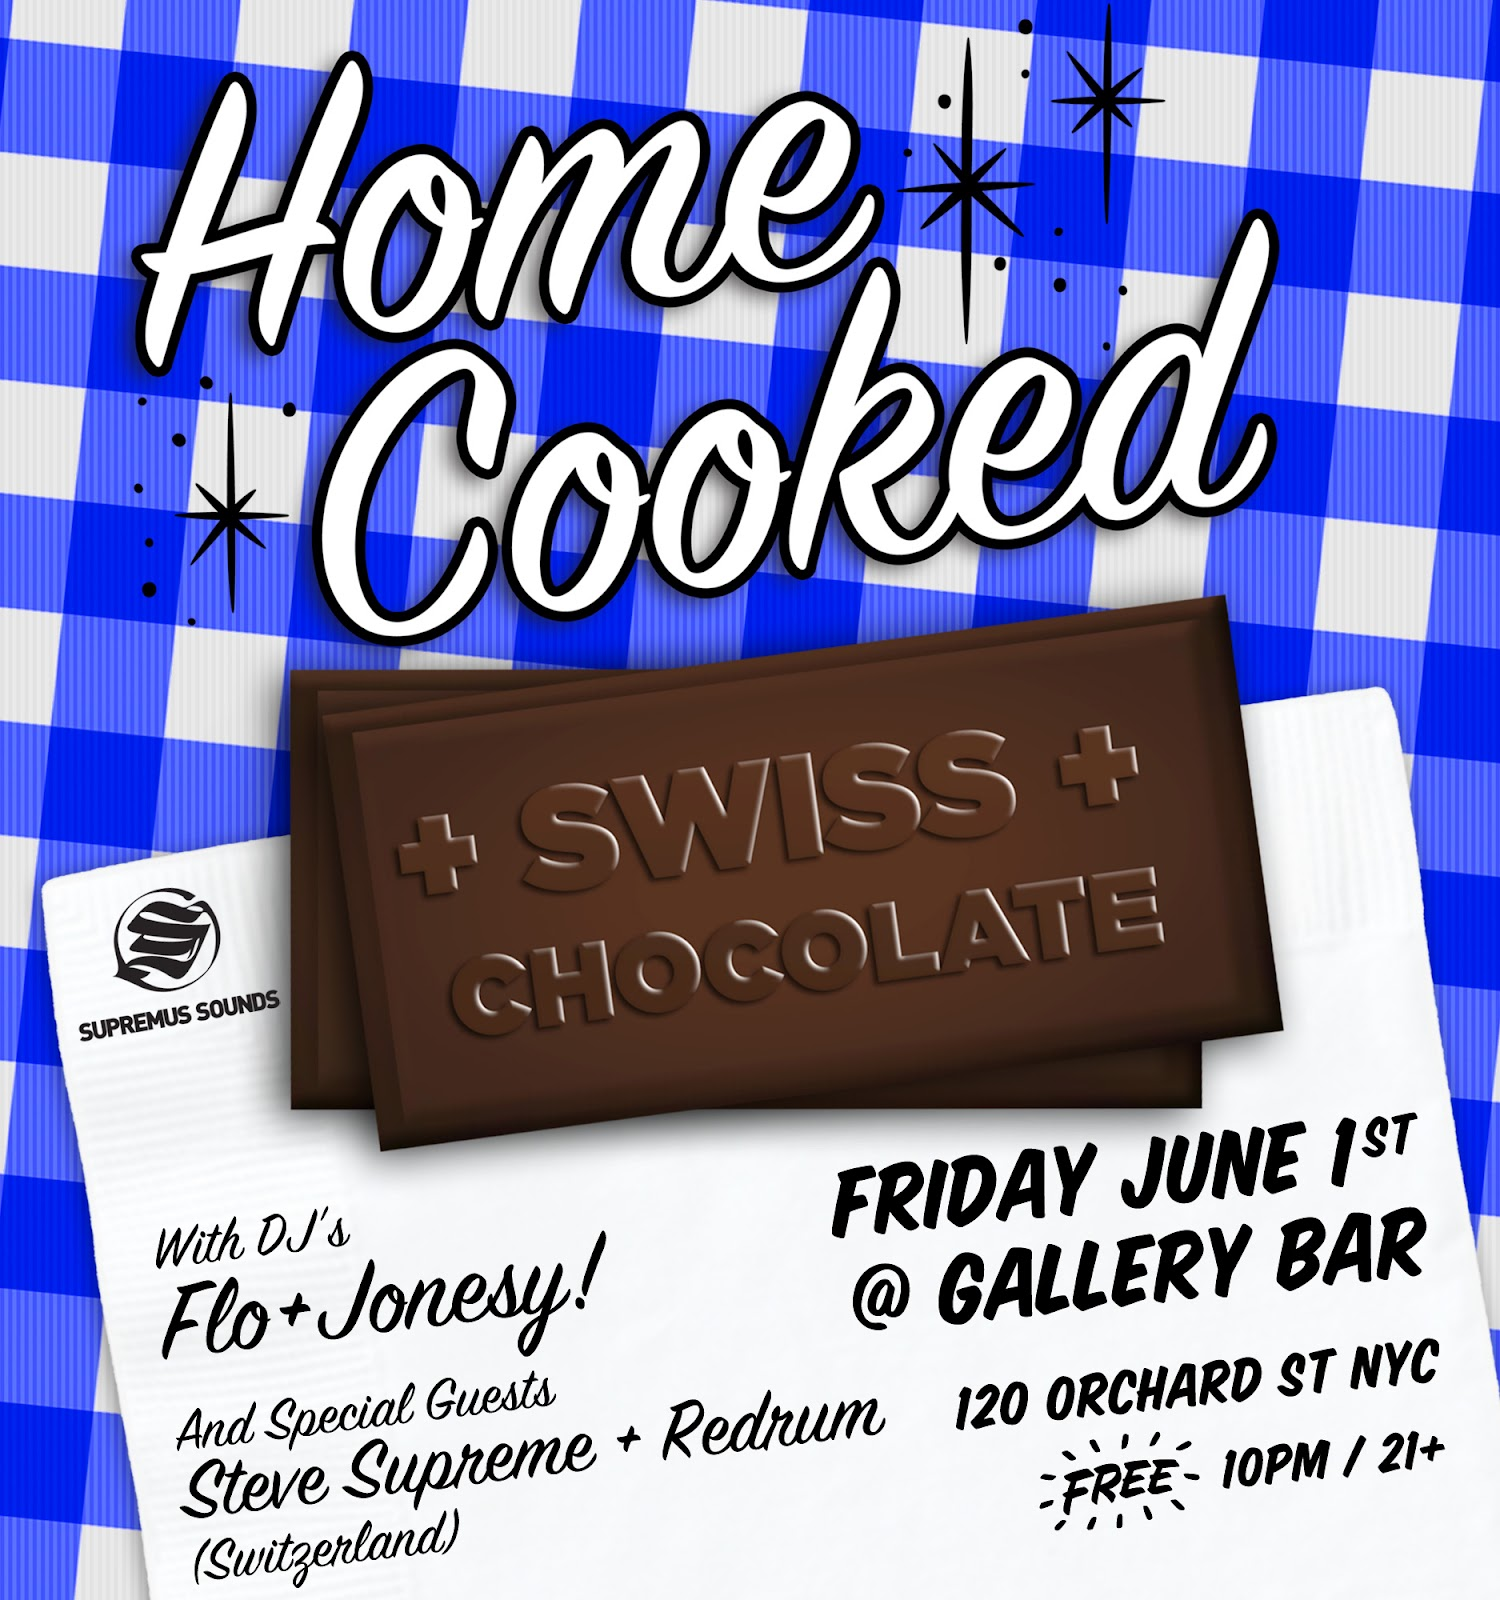 """HOME COOKED ended but we forgot to serve desert. Luckily two of Switzerland's top DJ's are in NYC to join #HC for a sweet party.""    Music Style : Hot-House & Deep-Dance    ************* Friday June 1st    DJs: FLO & Jonesy! 